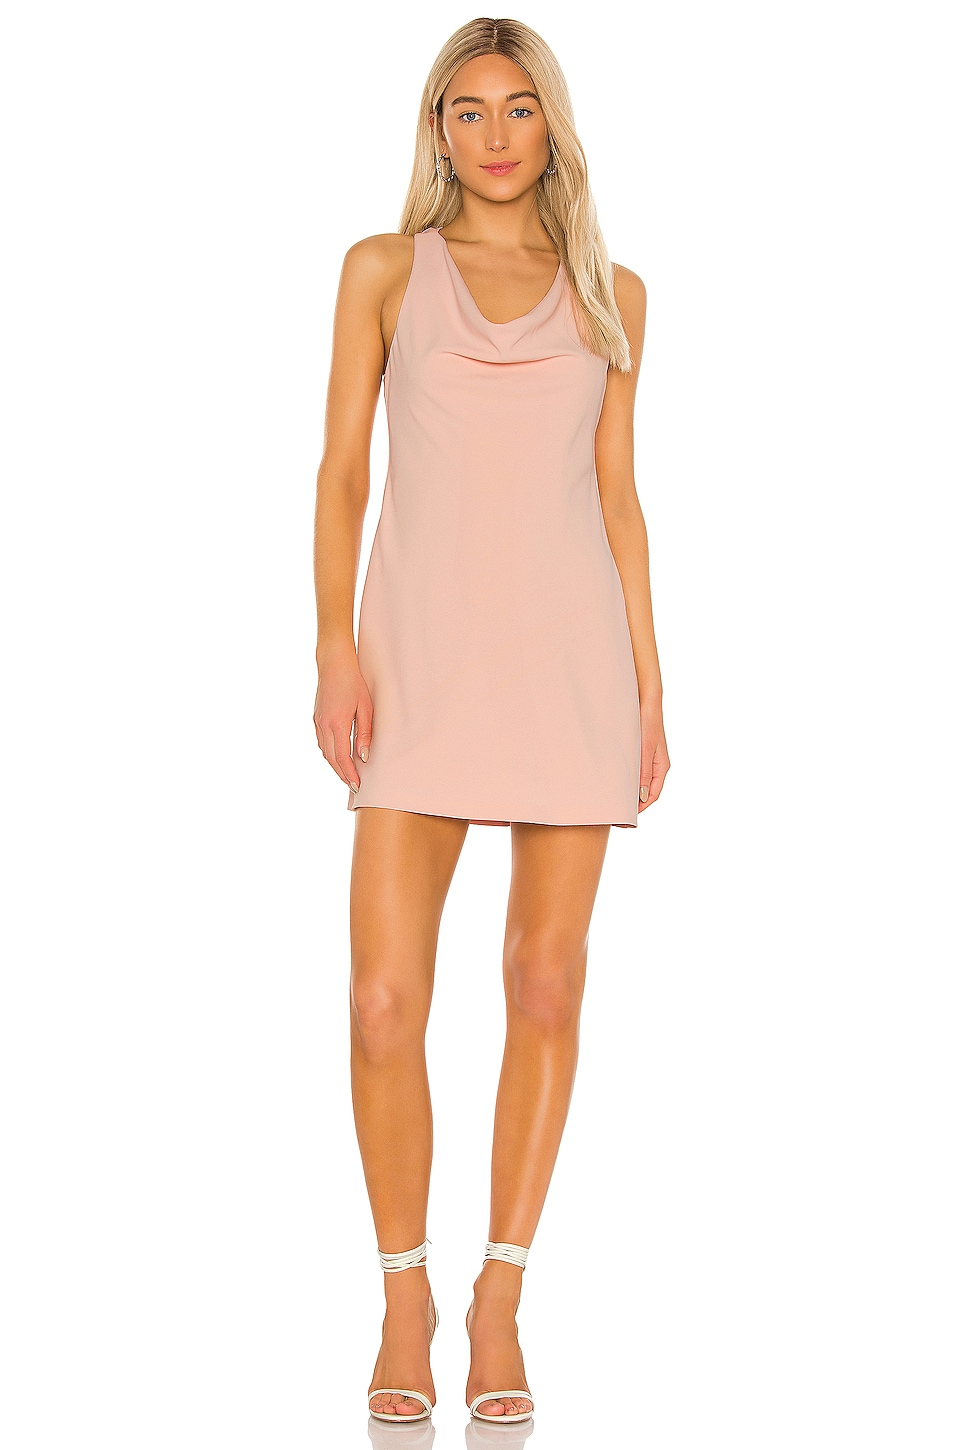 Alice + Olivia Harmony Mini Racer Back Dress in Blush